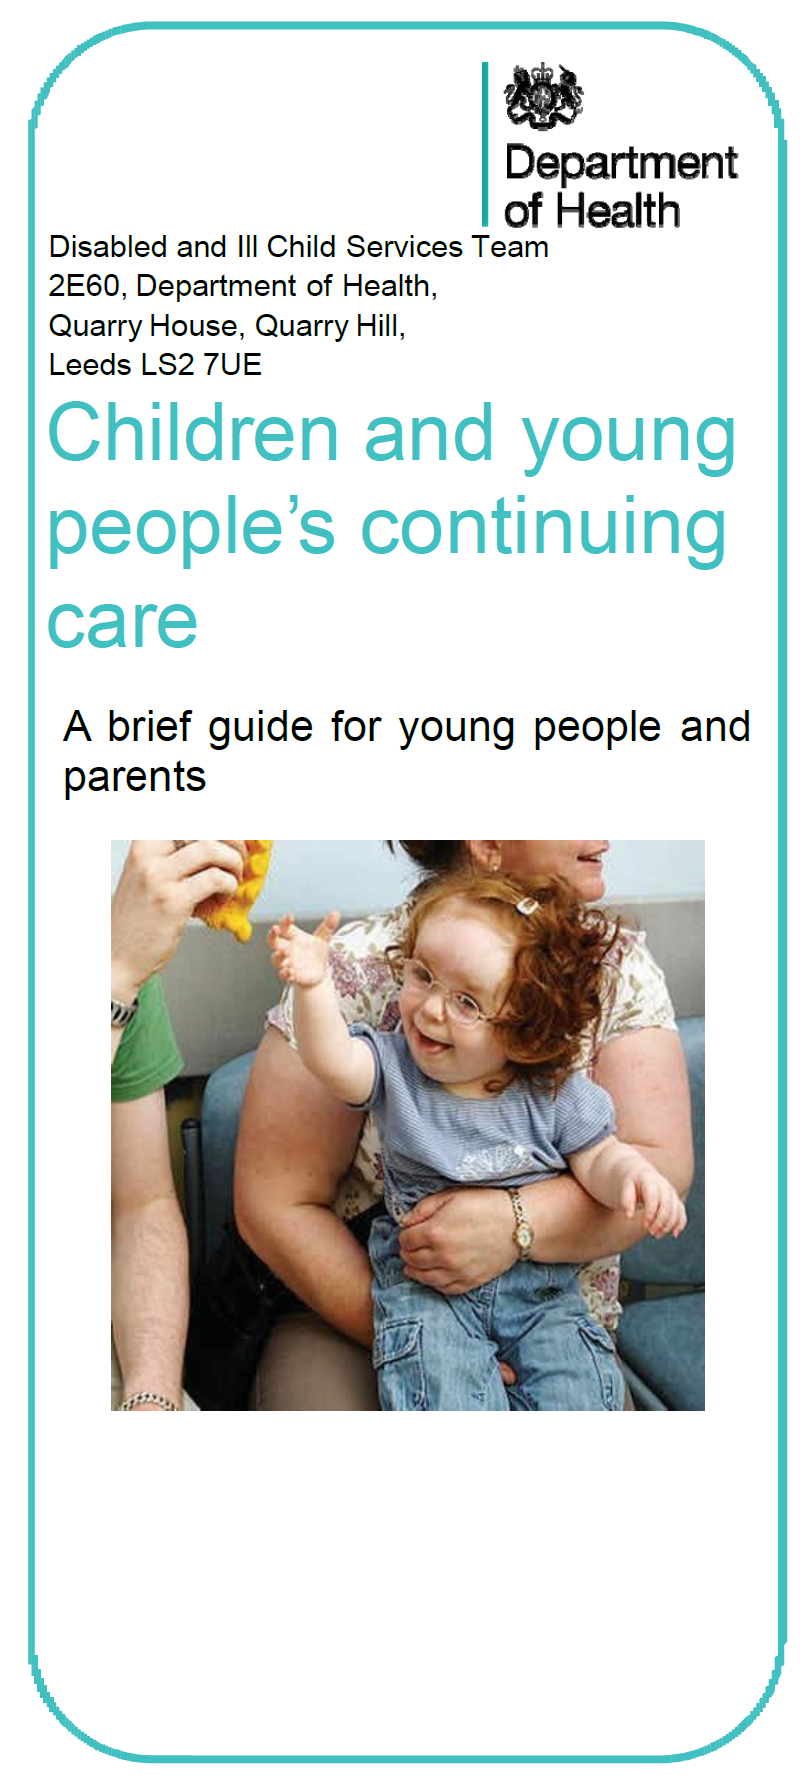 Continuing Care Leaflet